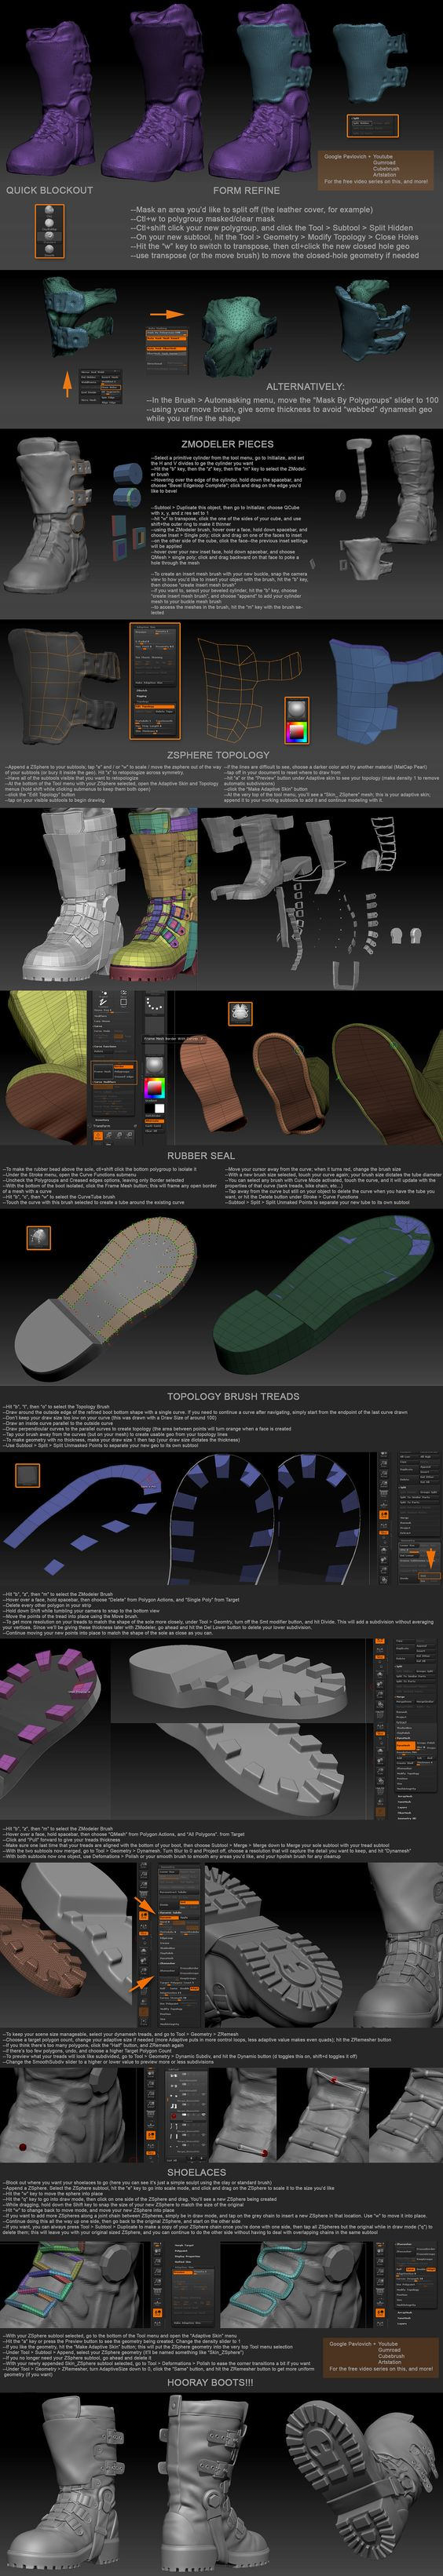 Make a fancy boot! Watch the videos and refer back to the handy breakdown image…